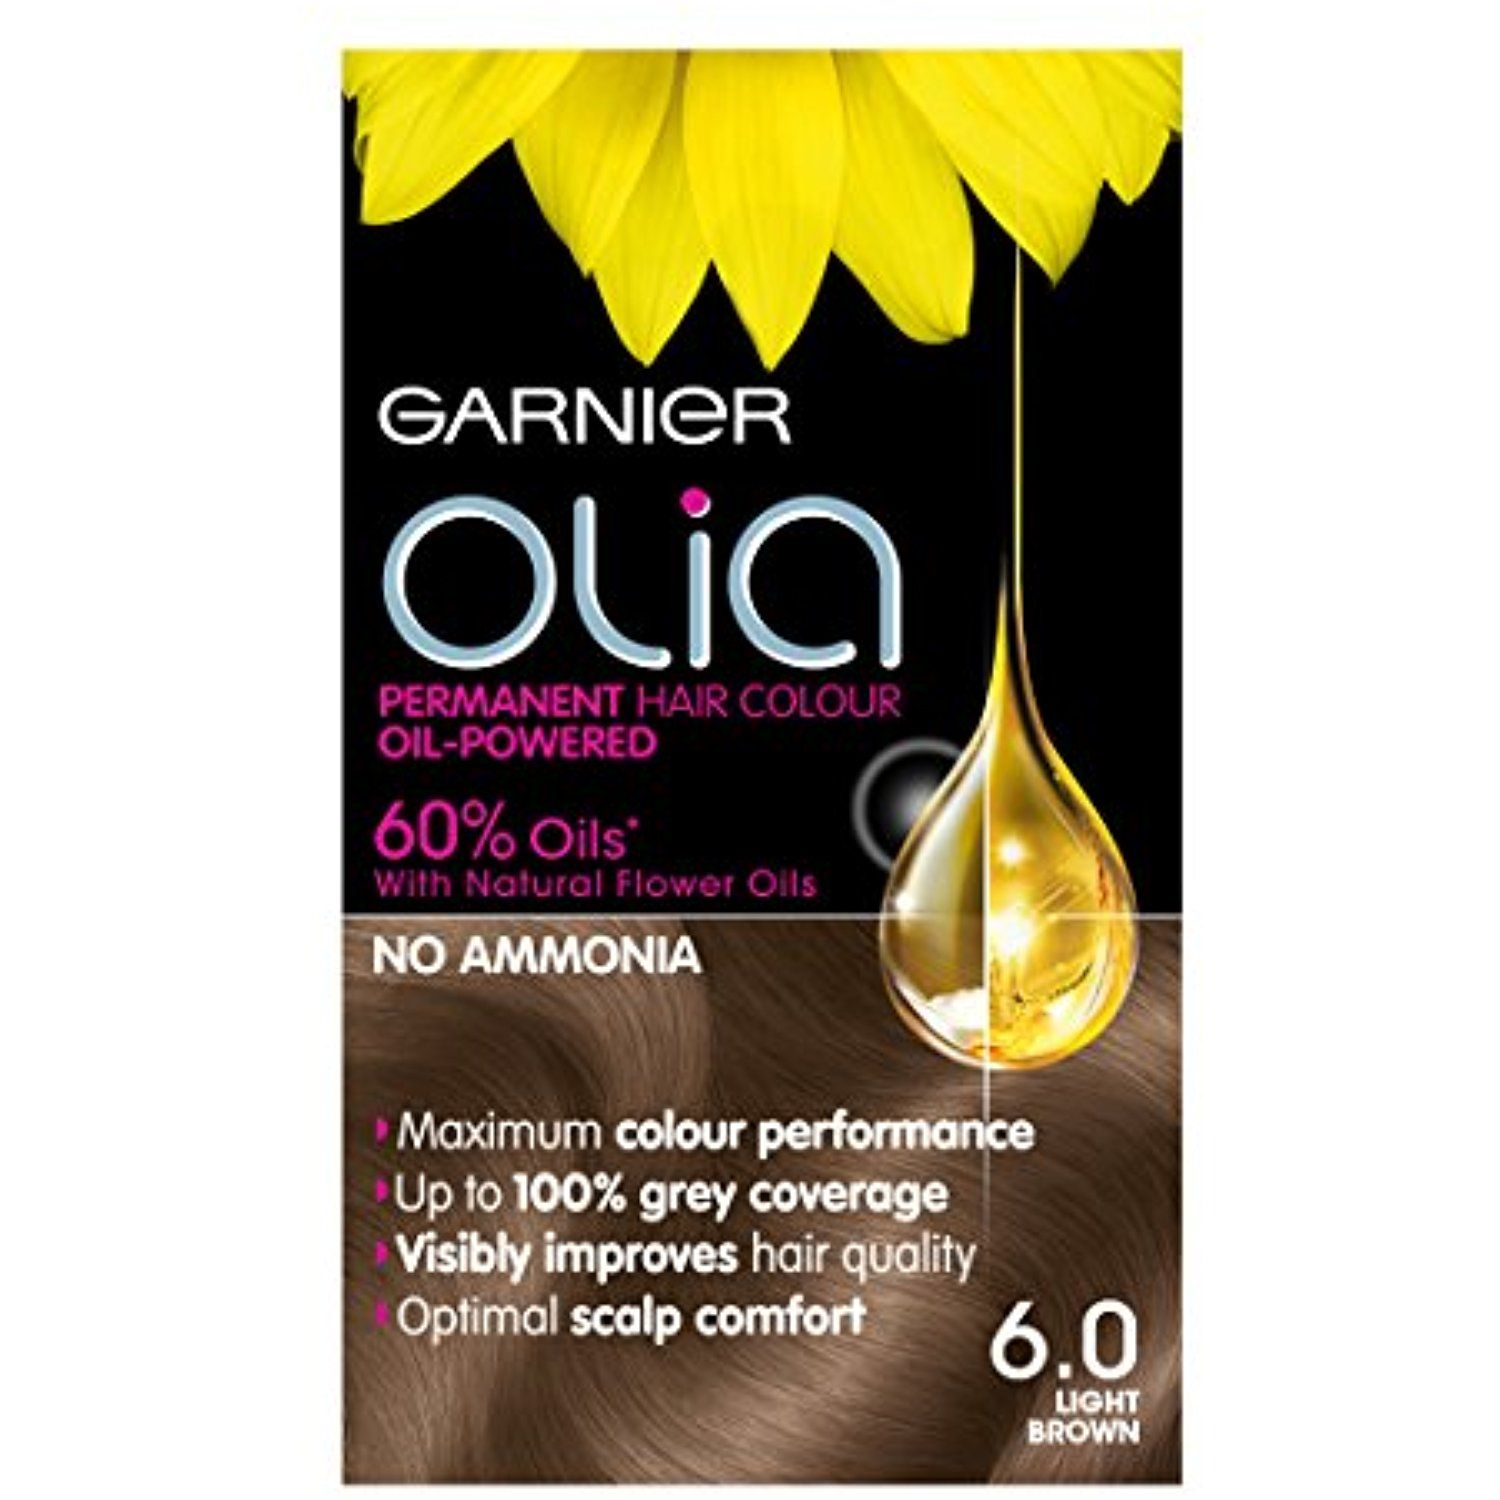 Garnier Olia Permanent Hair Colour 6 0 Light Brown Learn More By